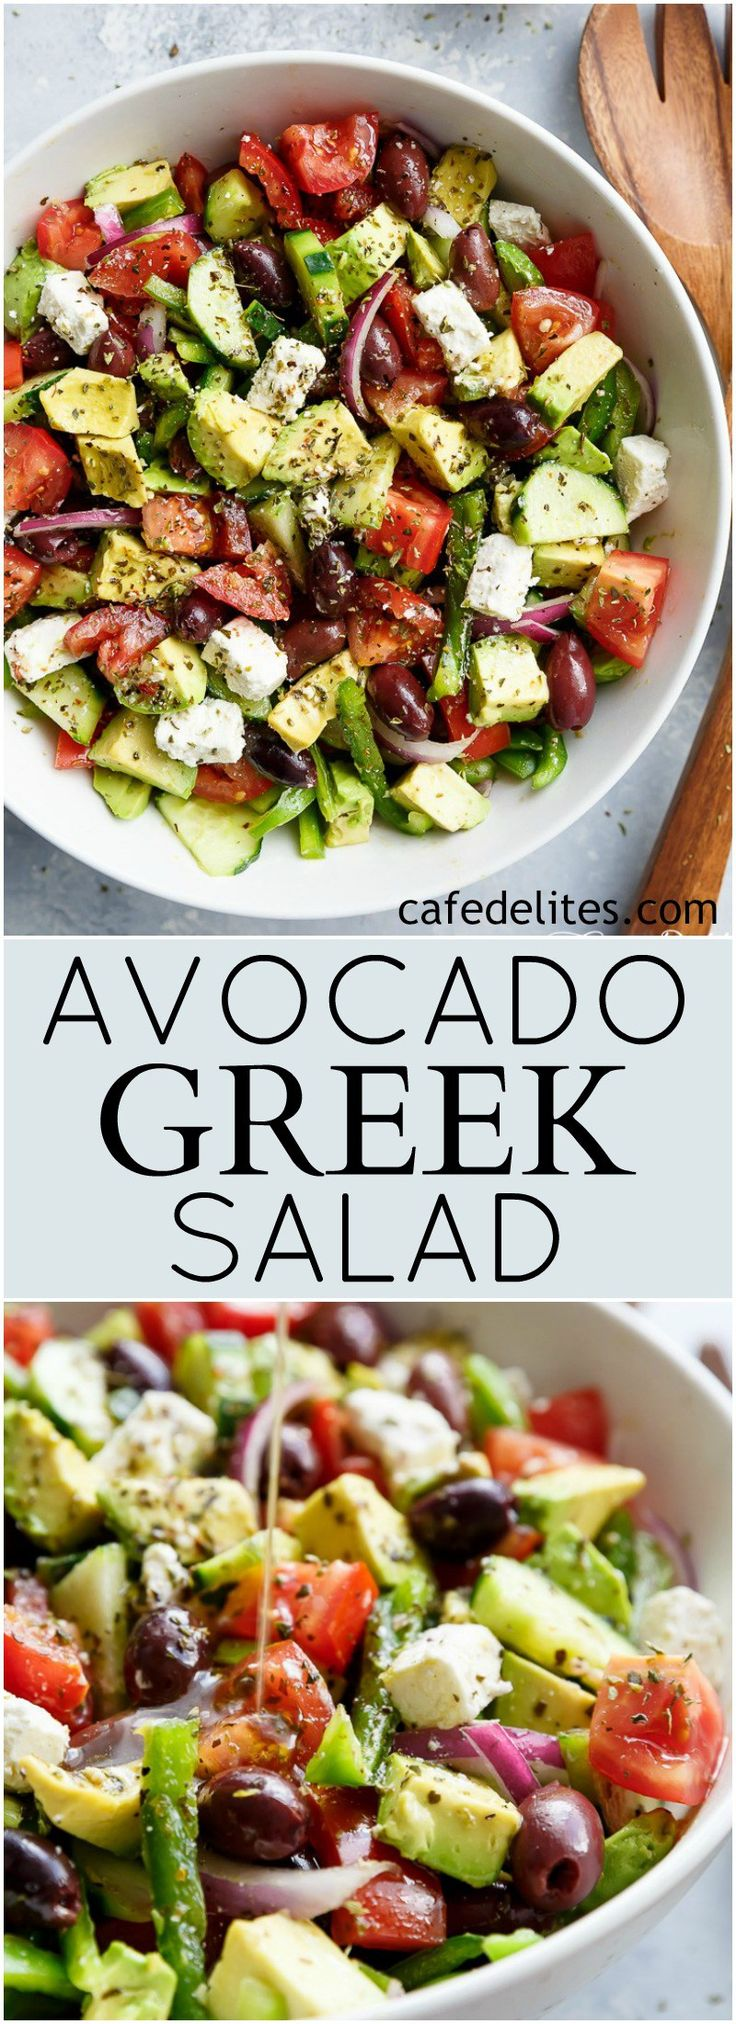 Avocado Greek Salad with a Greek Salad Dressing is a family favourite side salad served with anything! | cafedelites.com